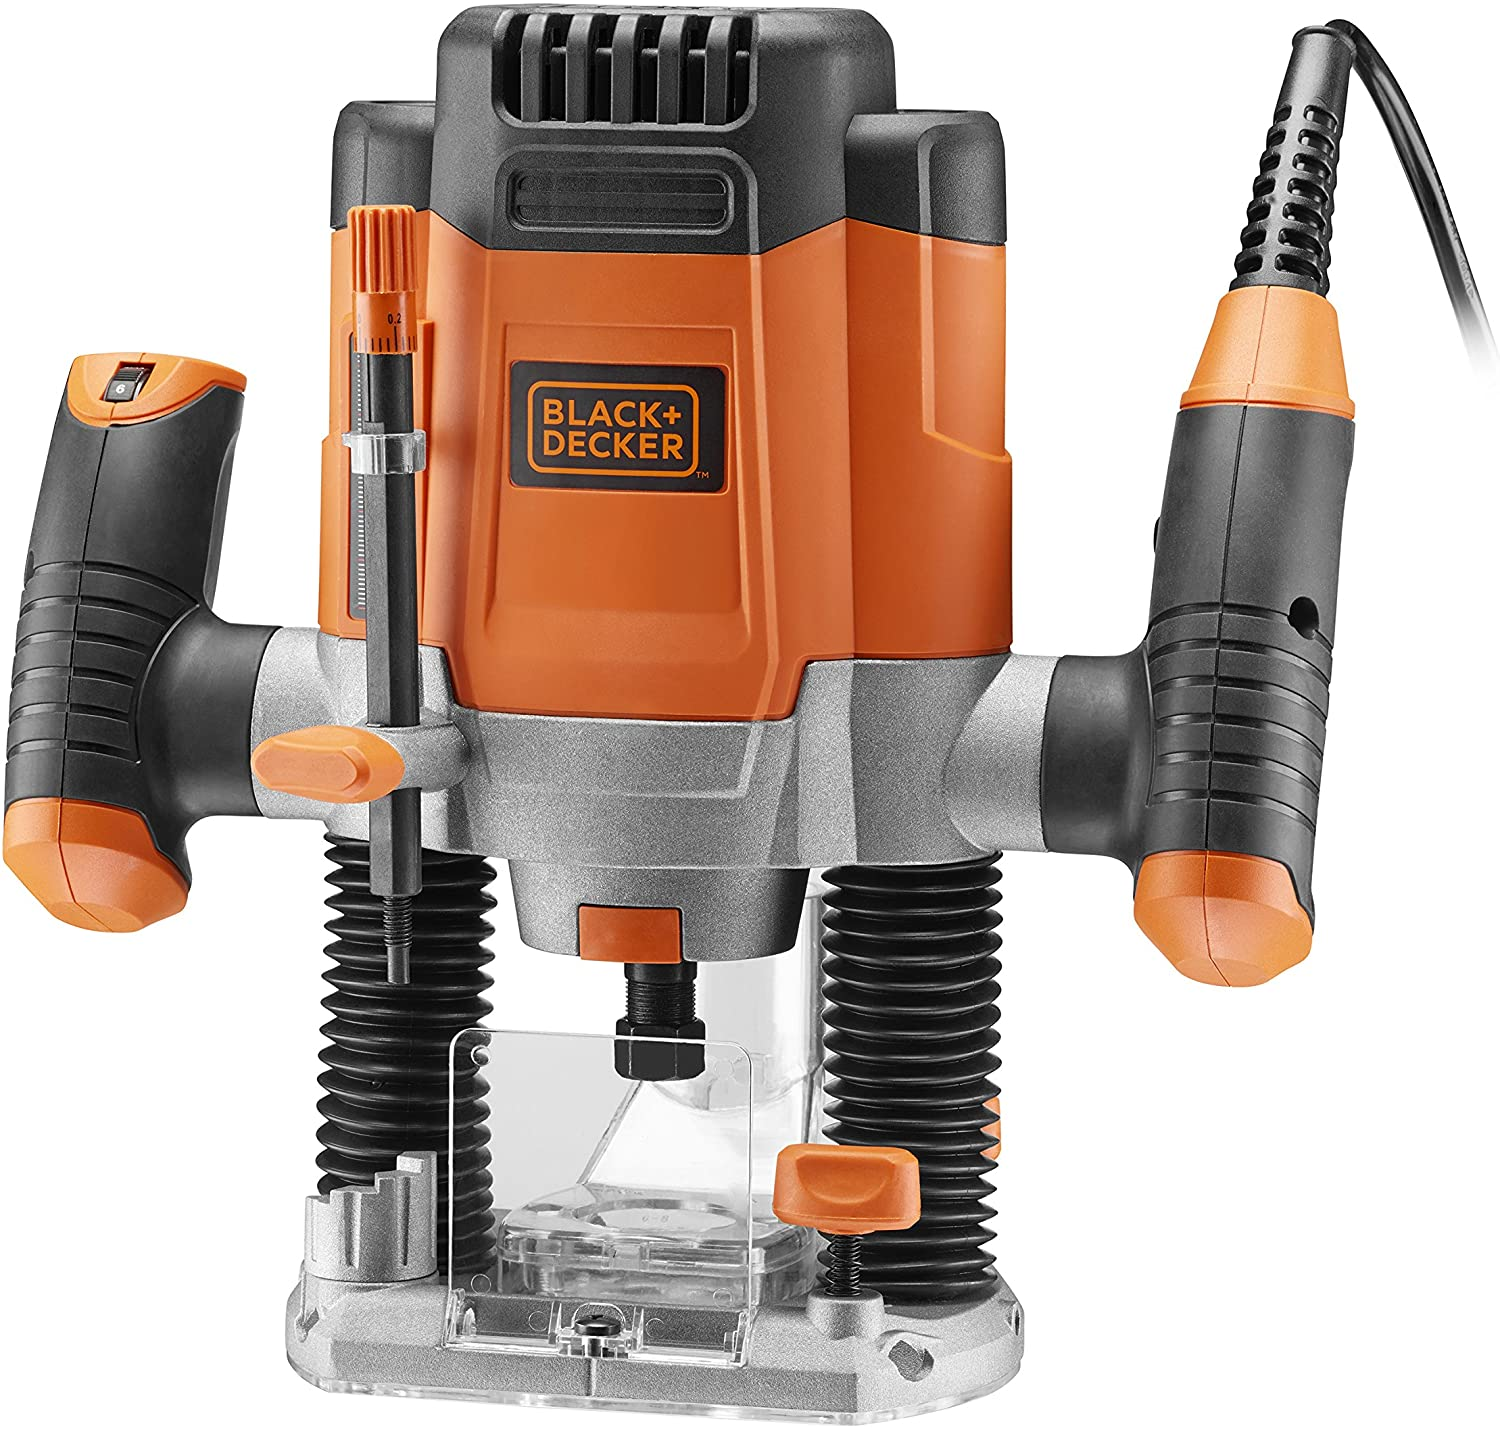 Fresadora para madera black and decker